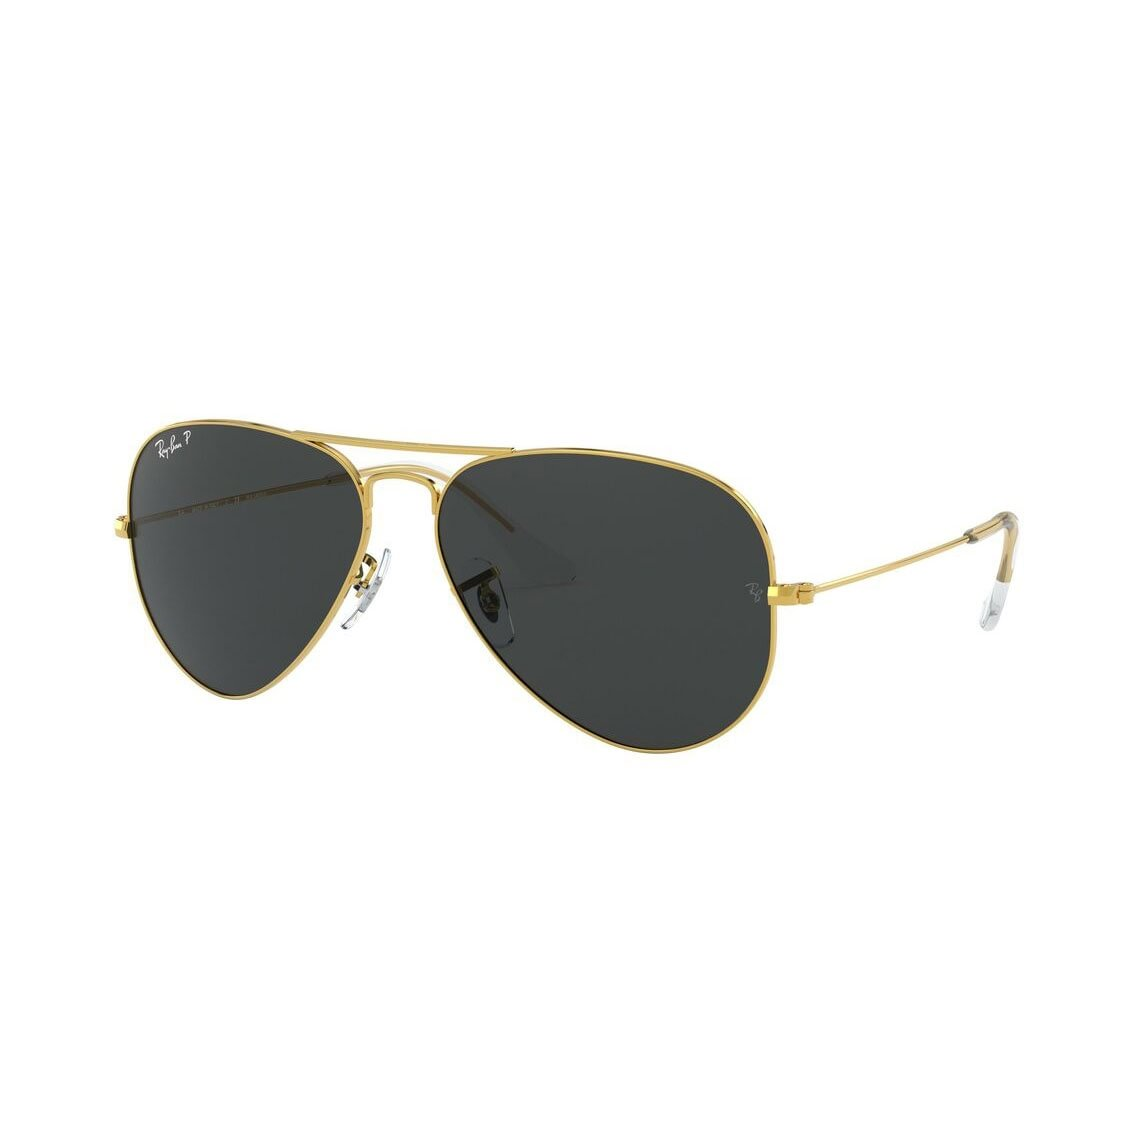 Ray-Ban Aviator Large Metal RB3025 919648 58